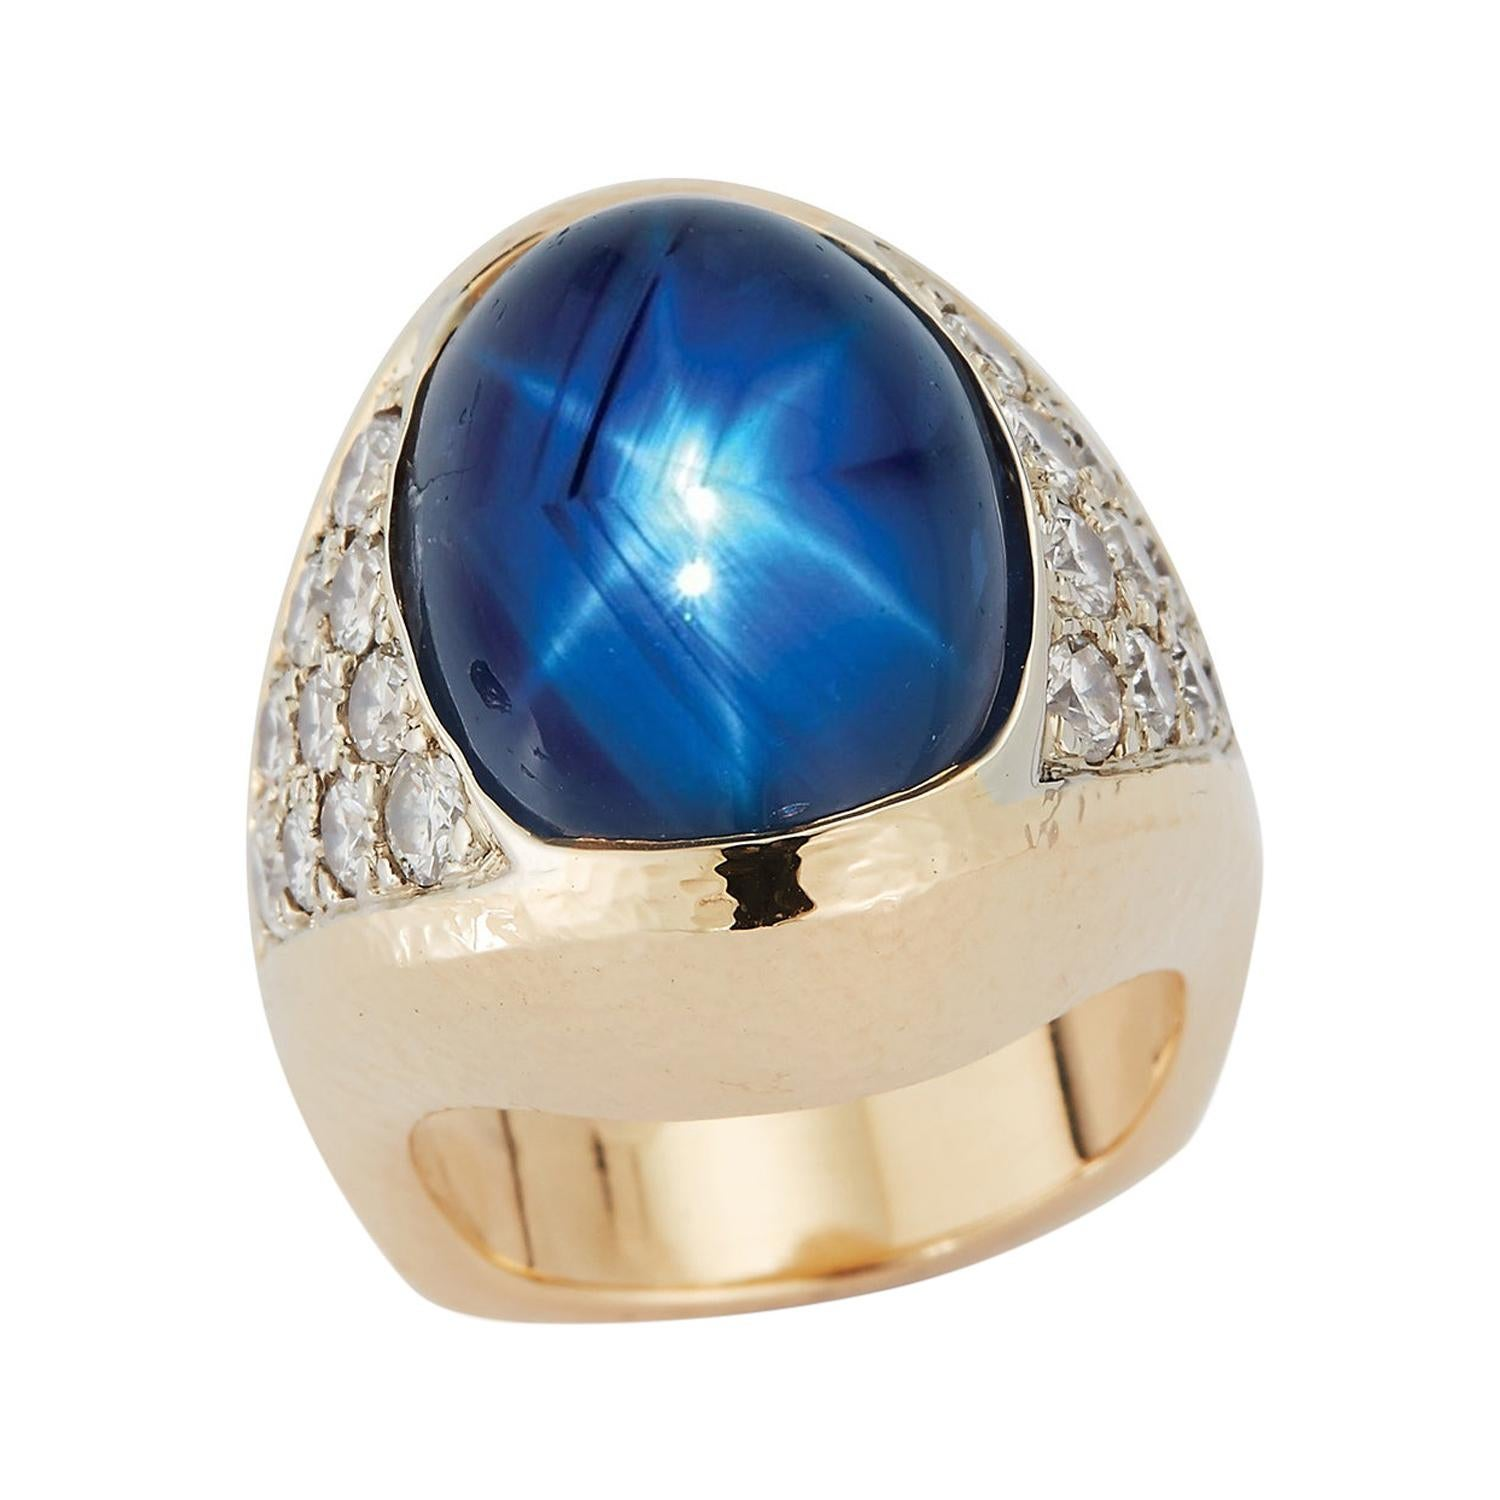 Certified Natural Star Sapphire Men's Ring by David Webb